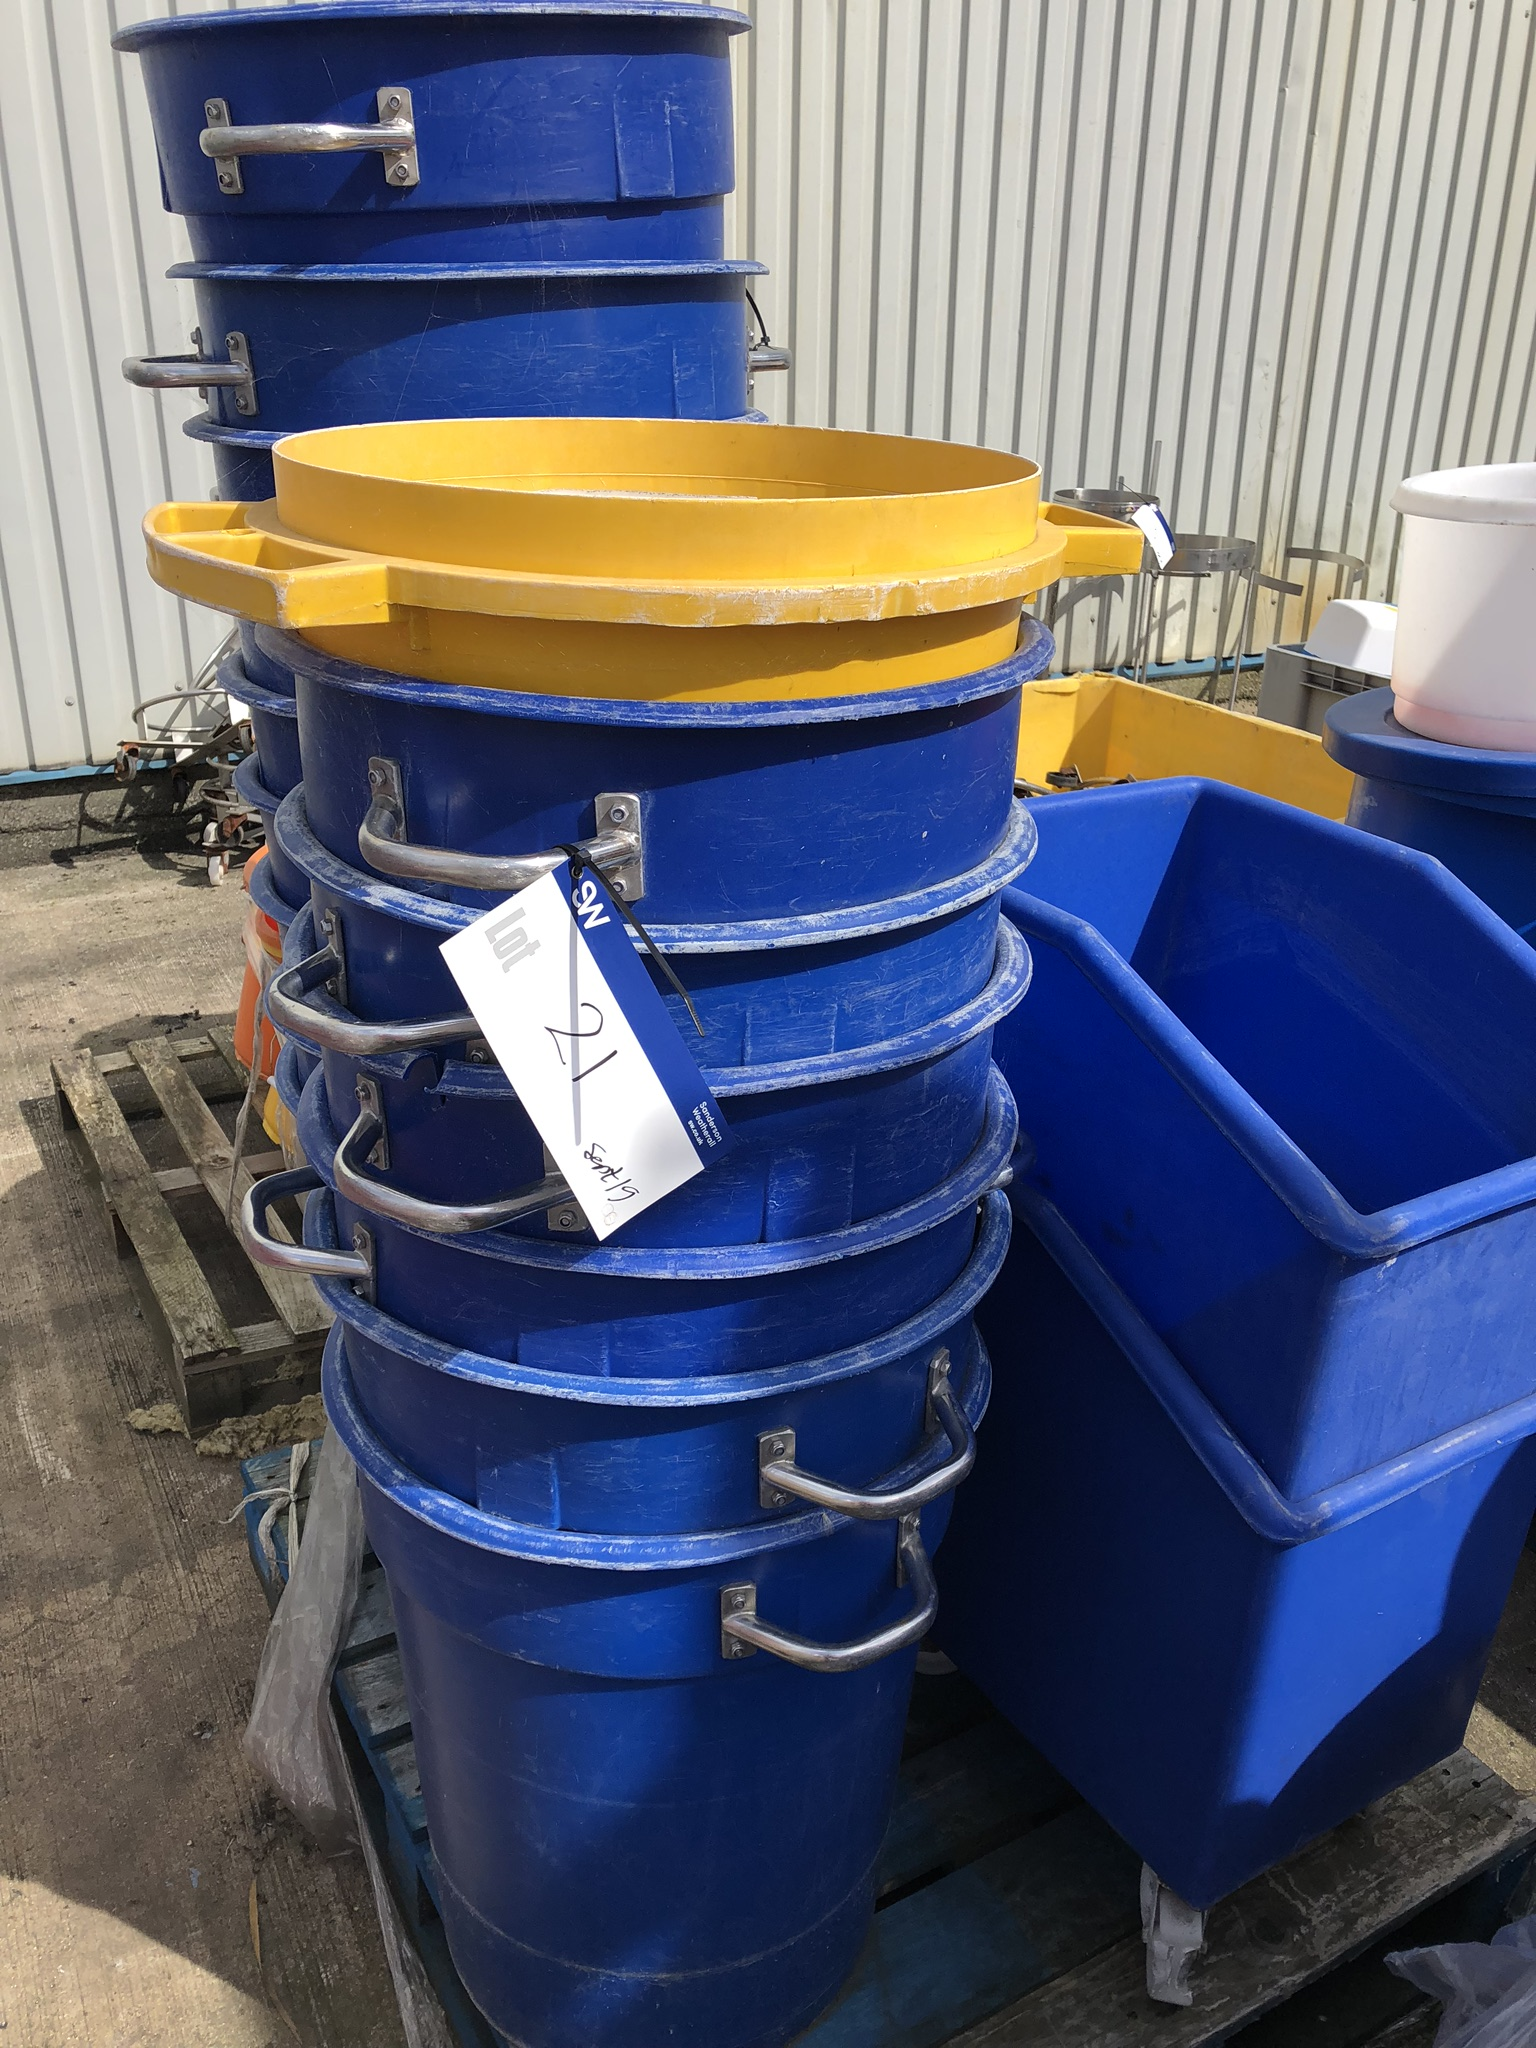 Four Pallets of Plastic Bin Buckets, lift out charge - £50